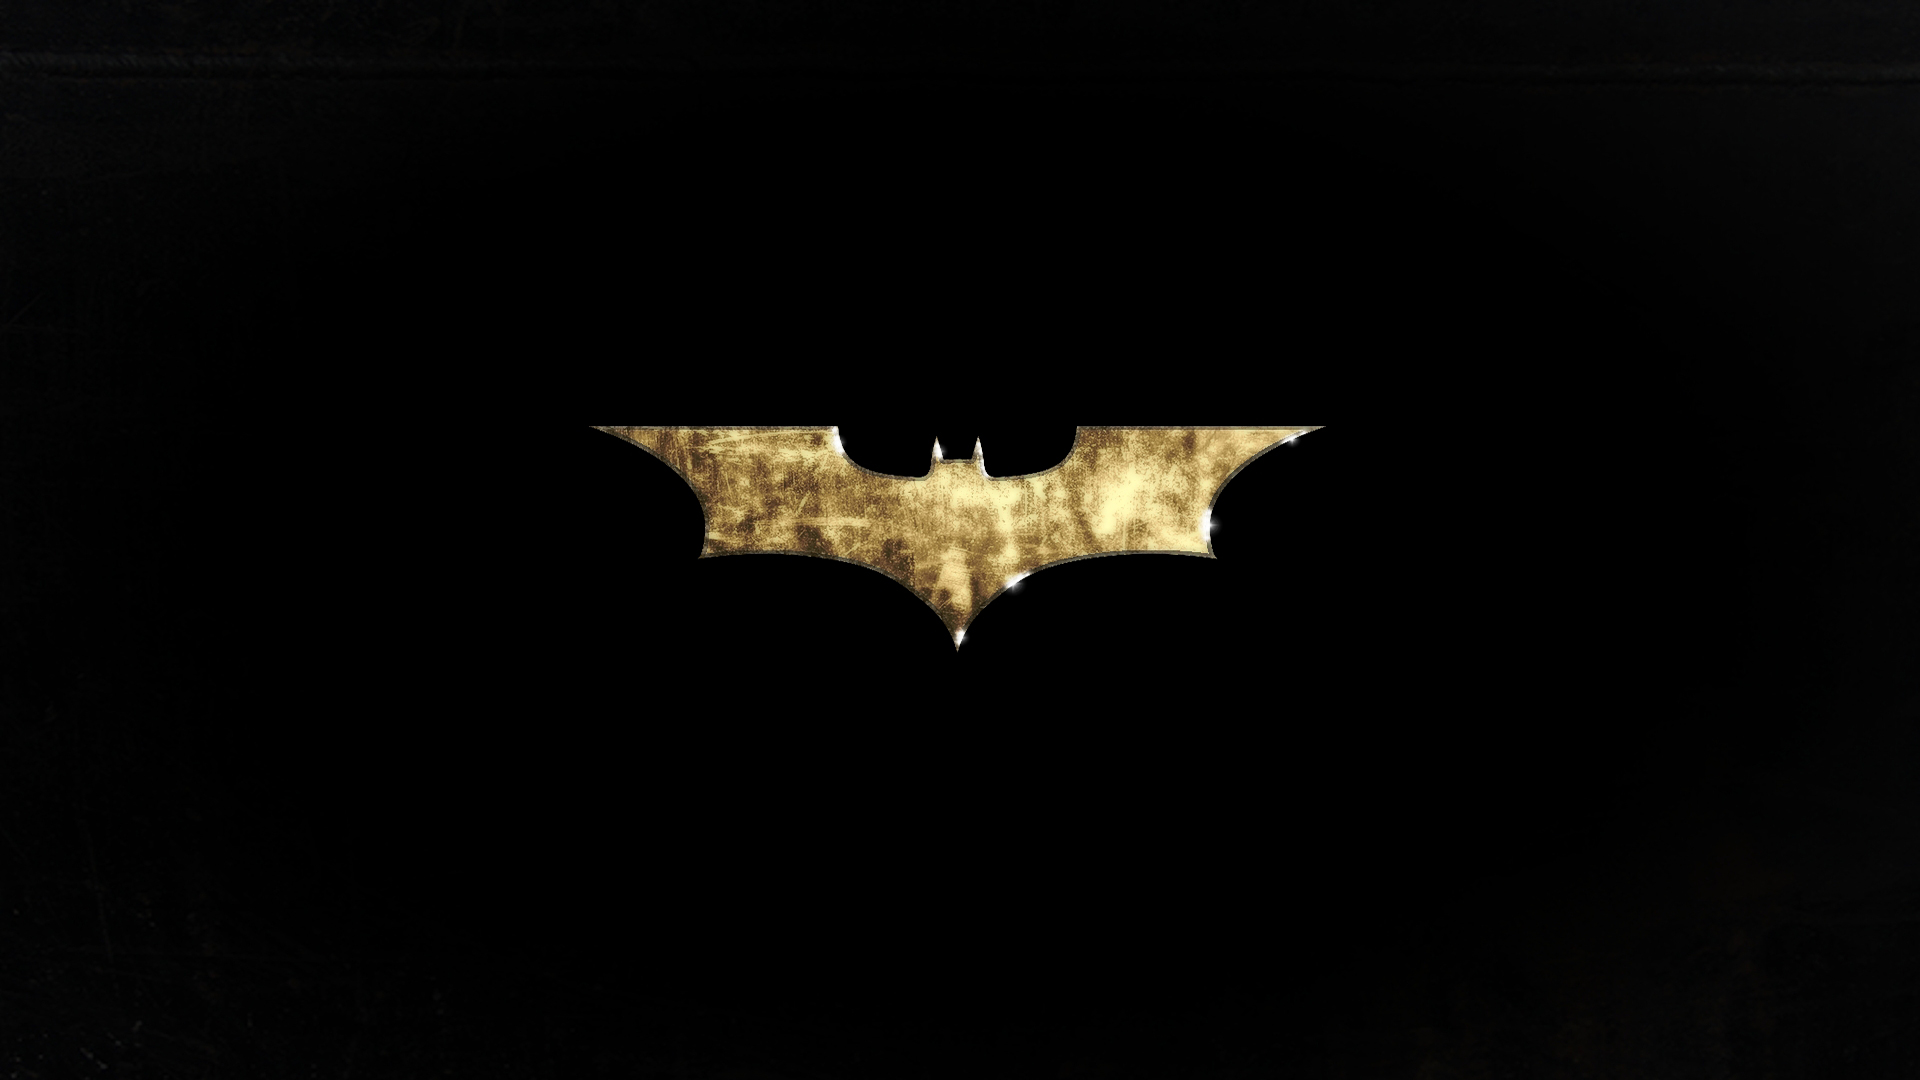 1920x1080 Grunge Batman Logo desktop PC and Mac wallpaper 1920x1080